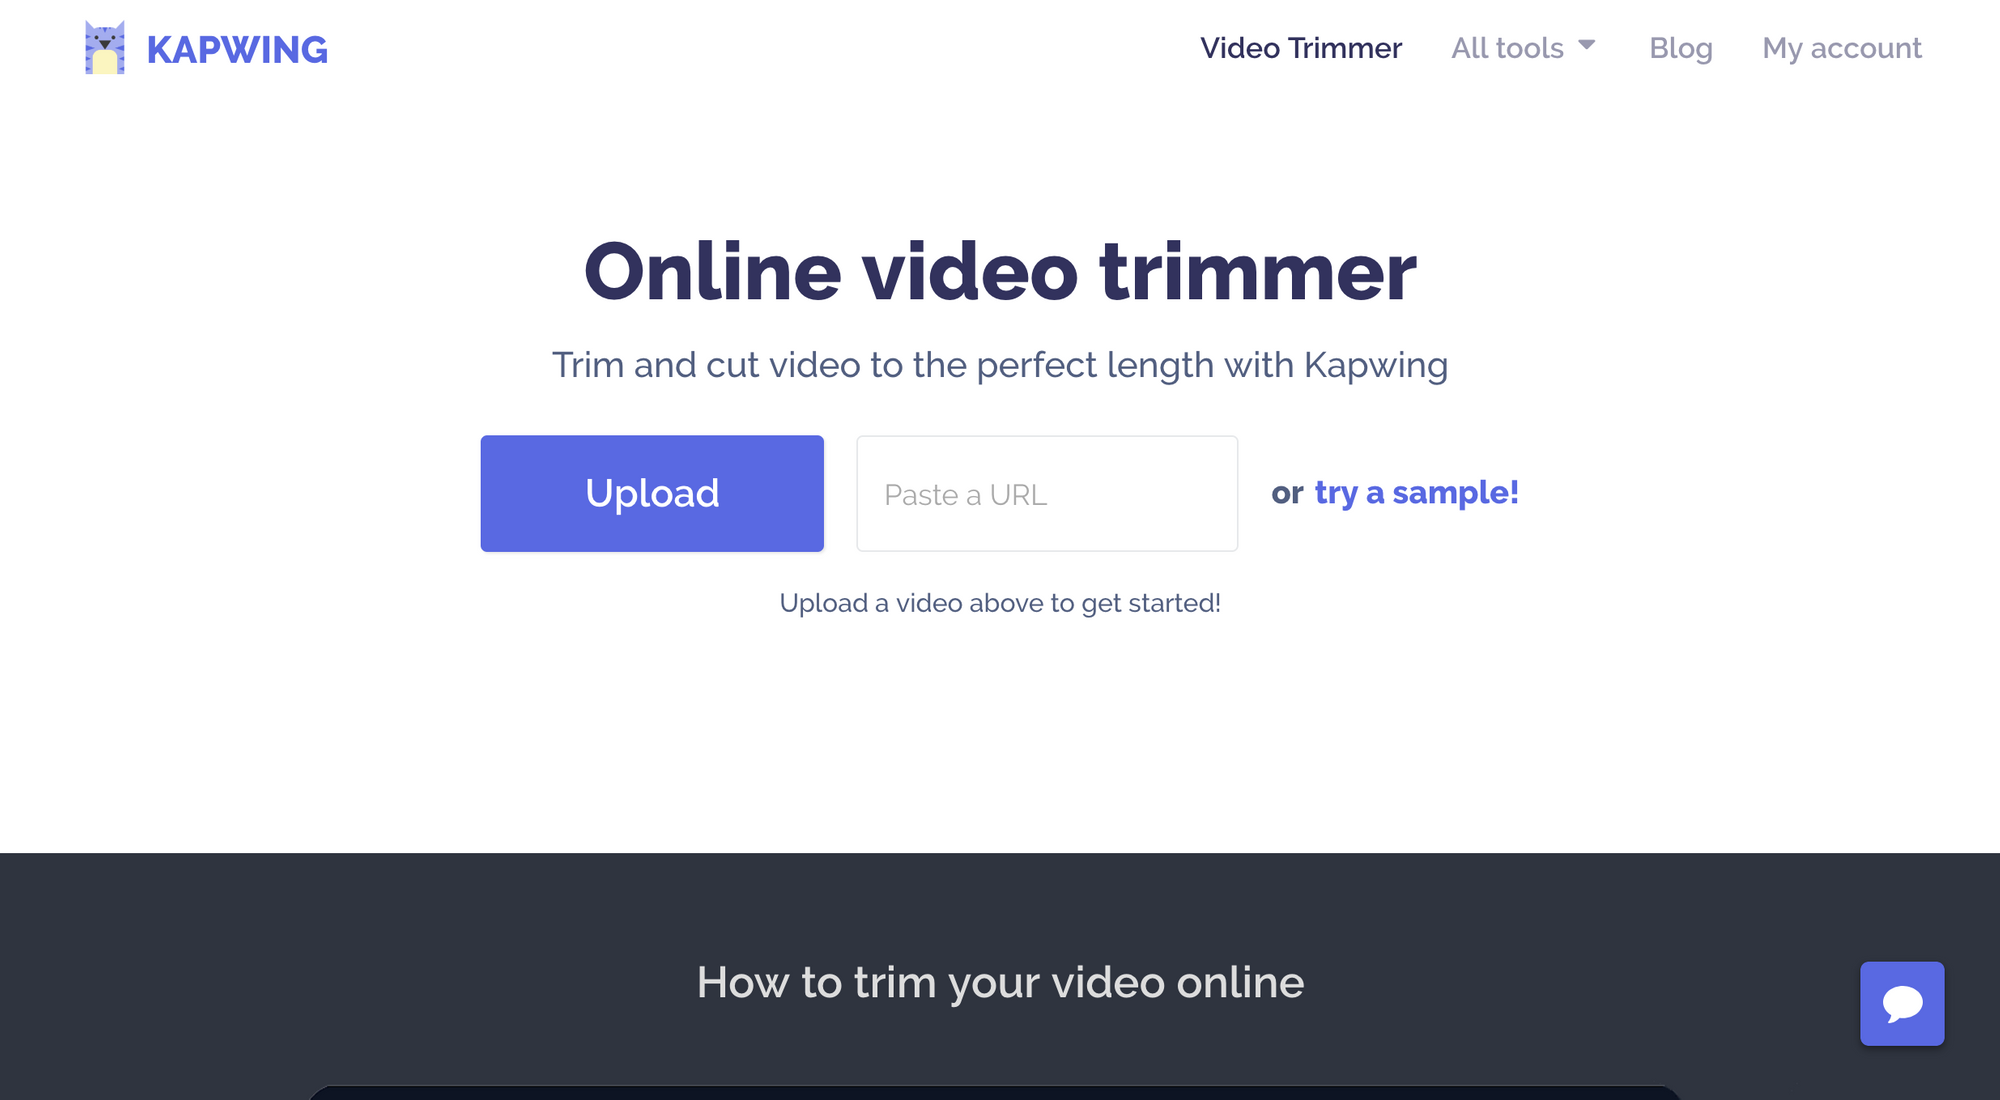 Video Trimmer Homepage, Kapwing